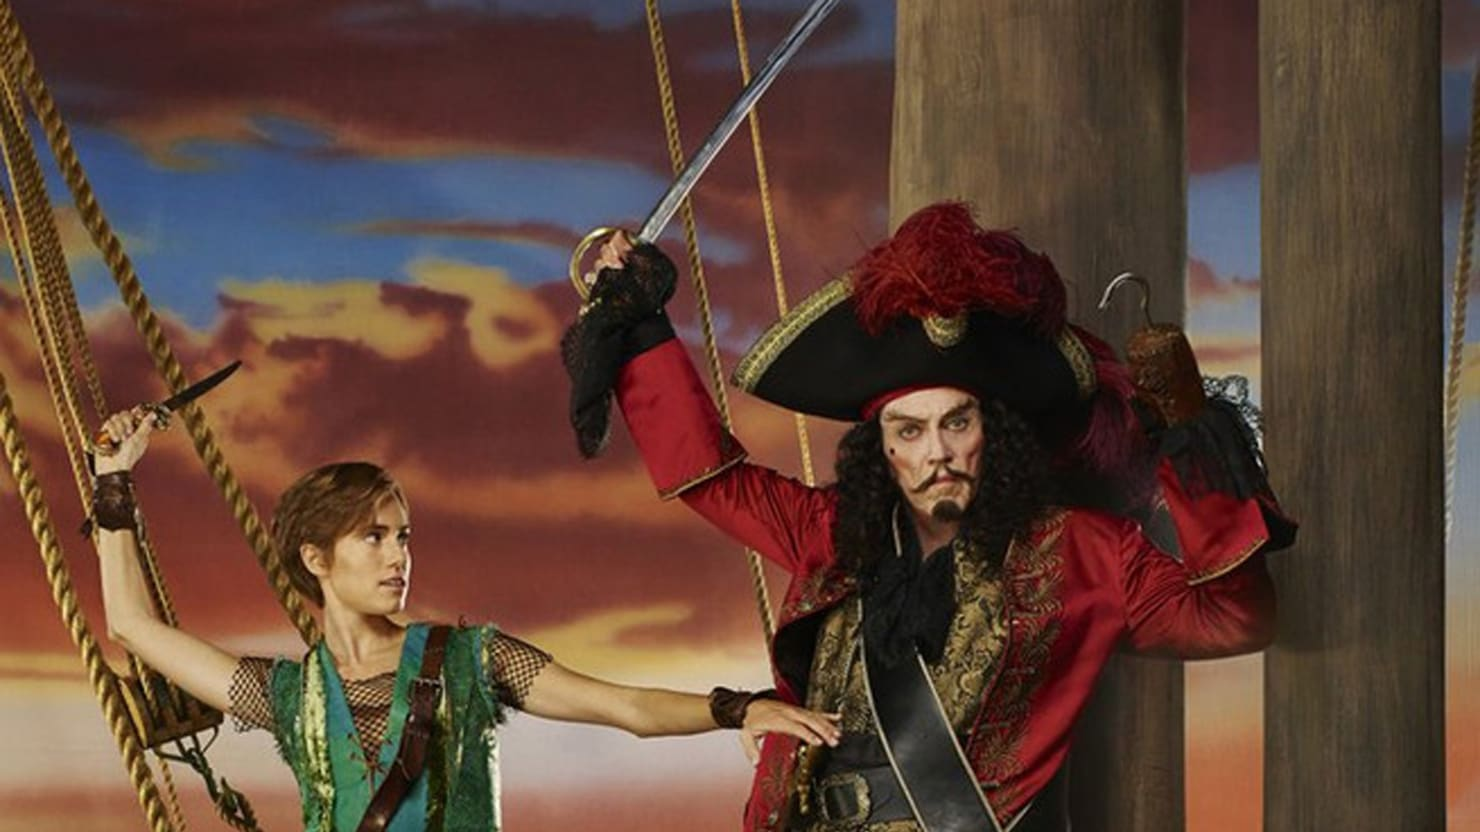 peter pan  review  amount  clapping brings   life